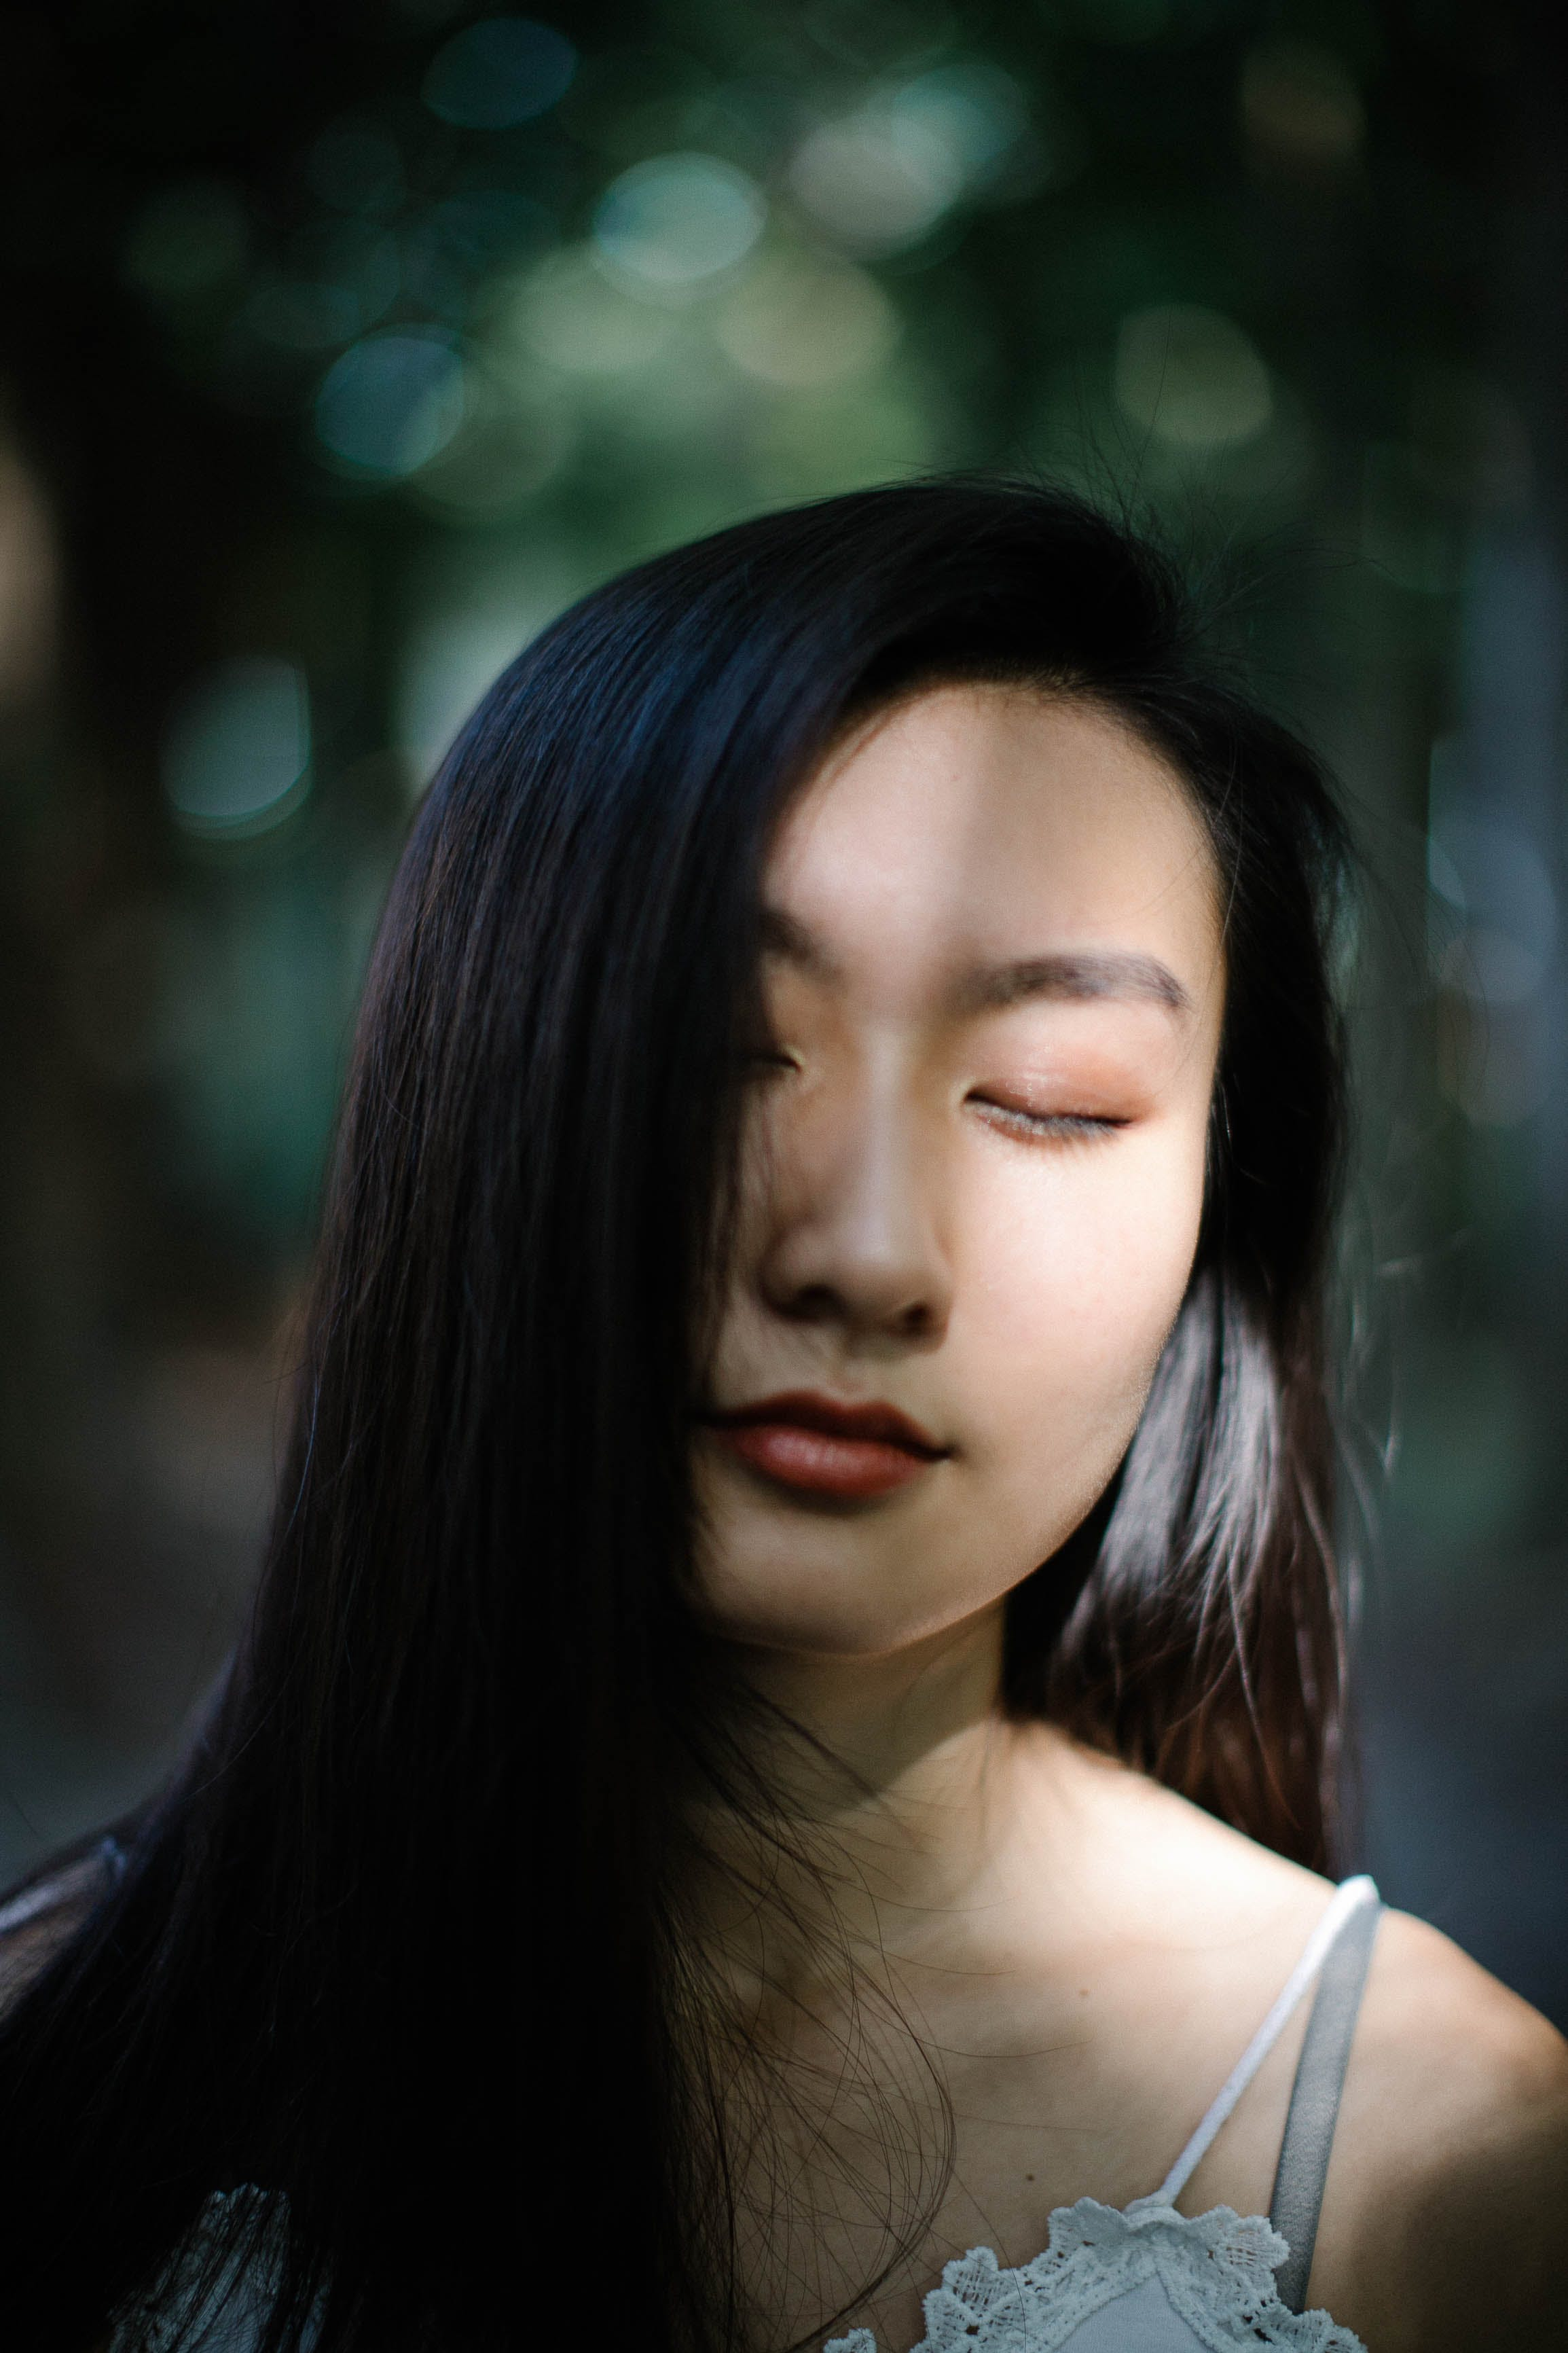 Close-Up Photography of a Woman With Closed Eyes